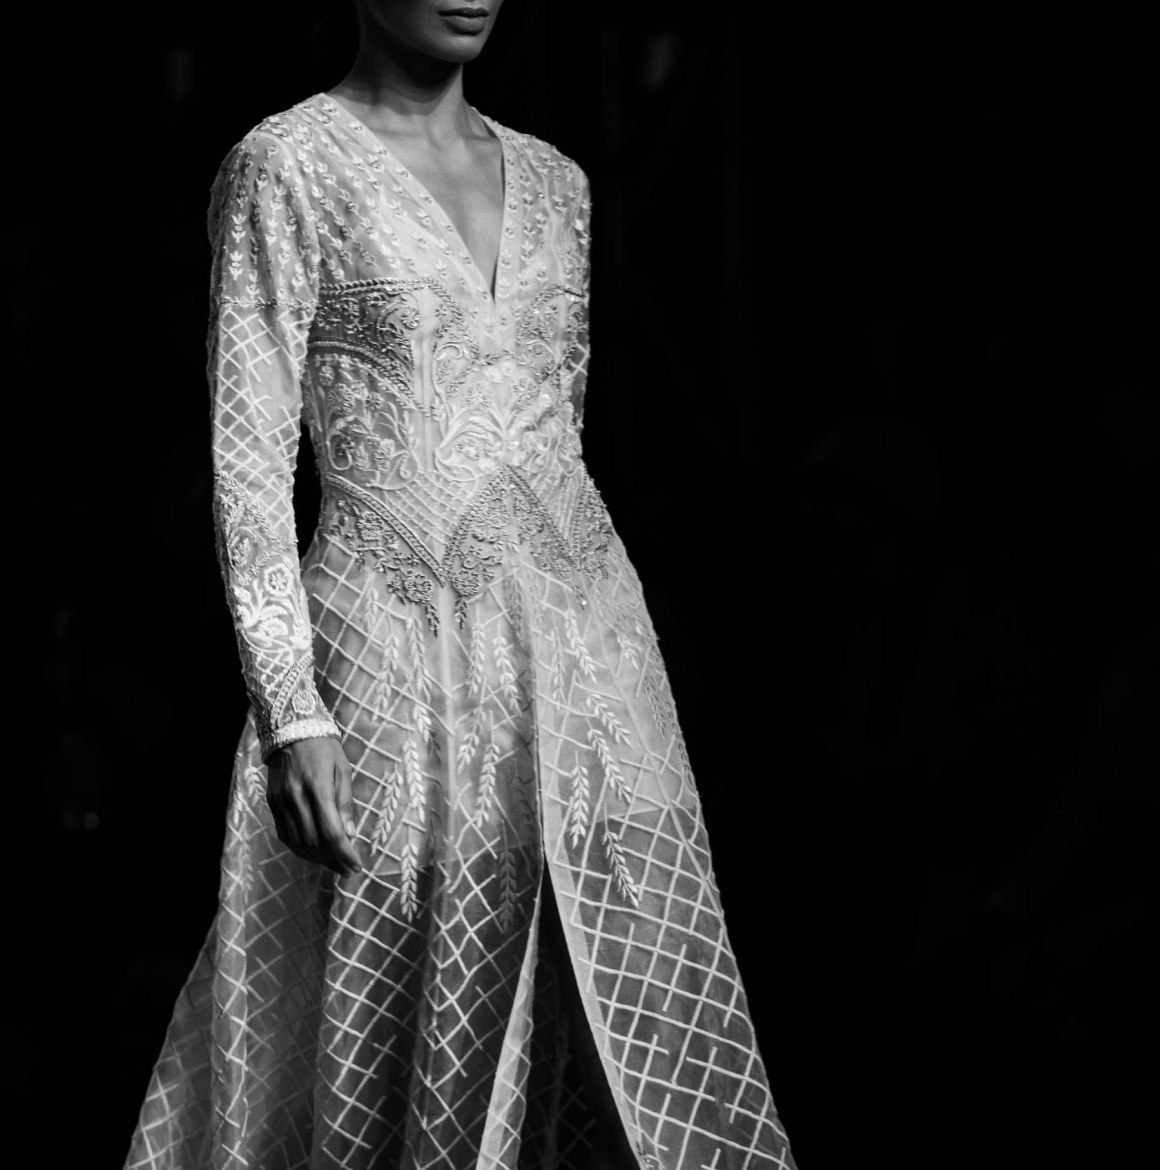 Naina Redhu, Naina.co, Huemn, Shyma Shetty, Pranav Kirti, Fashion Designer, FDCI, Lotus MakeUp India Fashion Week Spring Summer 2019, LMIFWSS19, LMIFW, India Fashion Week, Fashion Week Delhi, MadeInIndia, Made In India, EyesForFashion, Professional Photographer, Blogger, Fashion Photographer, Lifestyle Photographer, Luxury Photographer, Delhi Photographer, Gurgaon Photographer, Delhi Blogger, Gurgaon Blogger, Indian Blogger